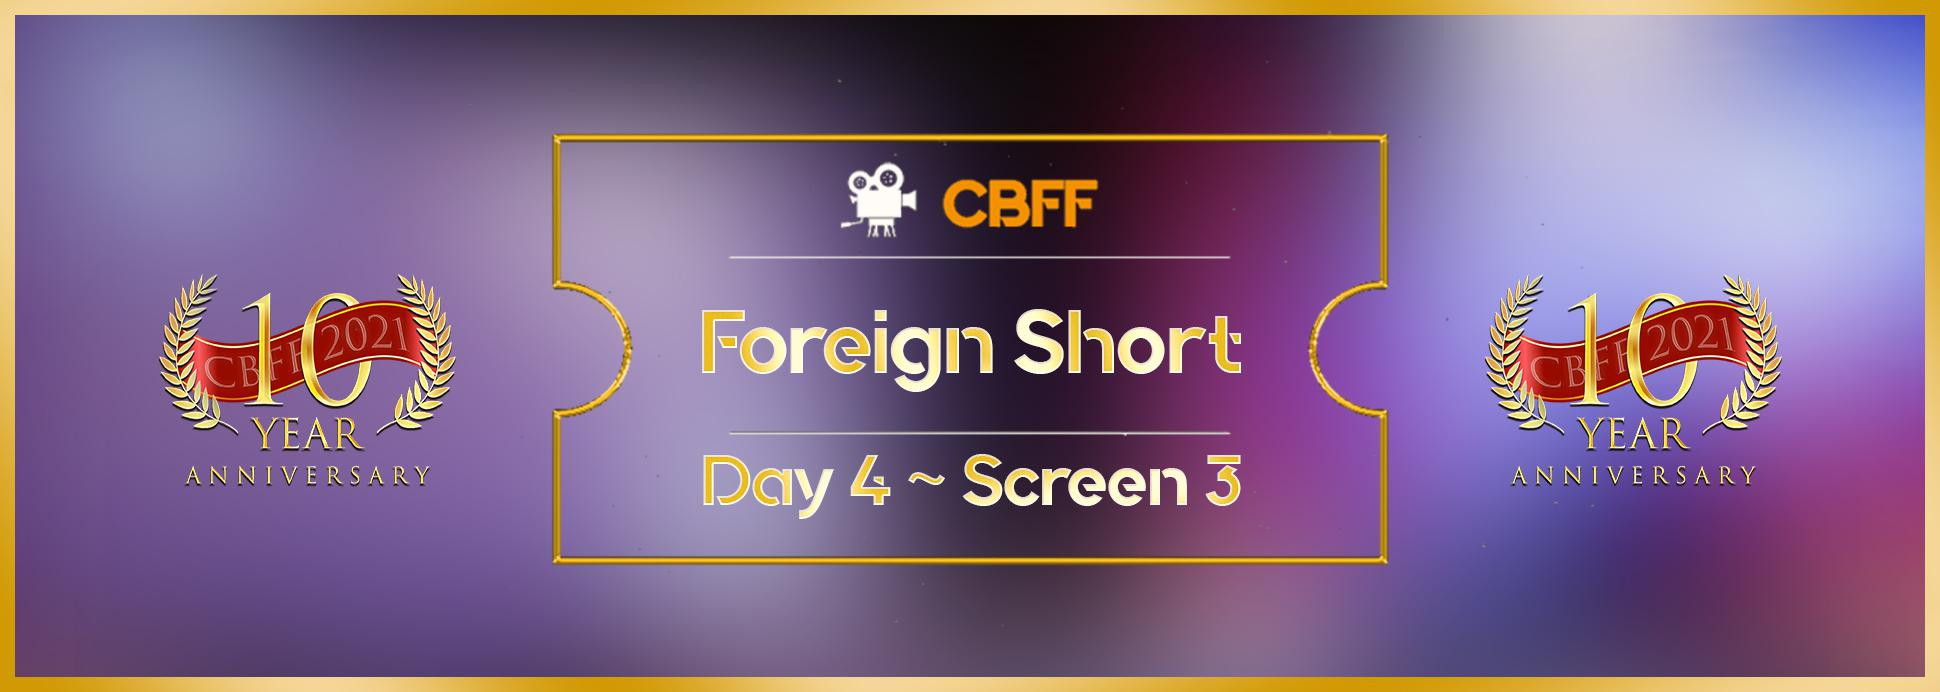 Day 4, Screen 3: Foreign Short 2